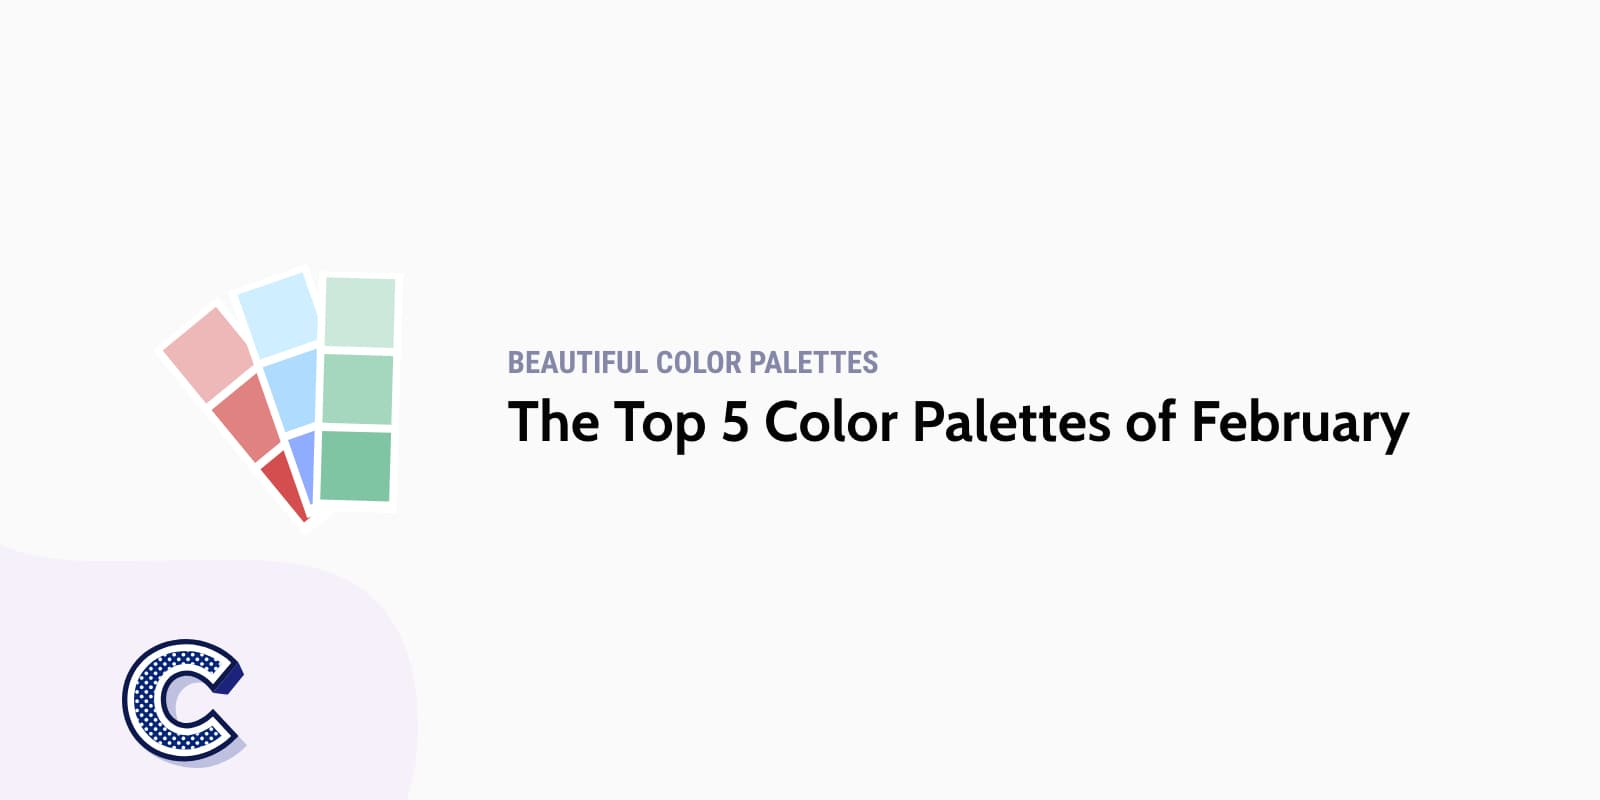 The Top 5 Color Palettes of February